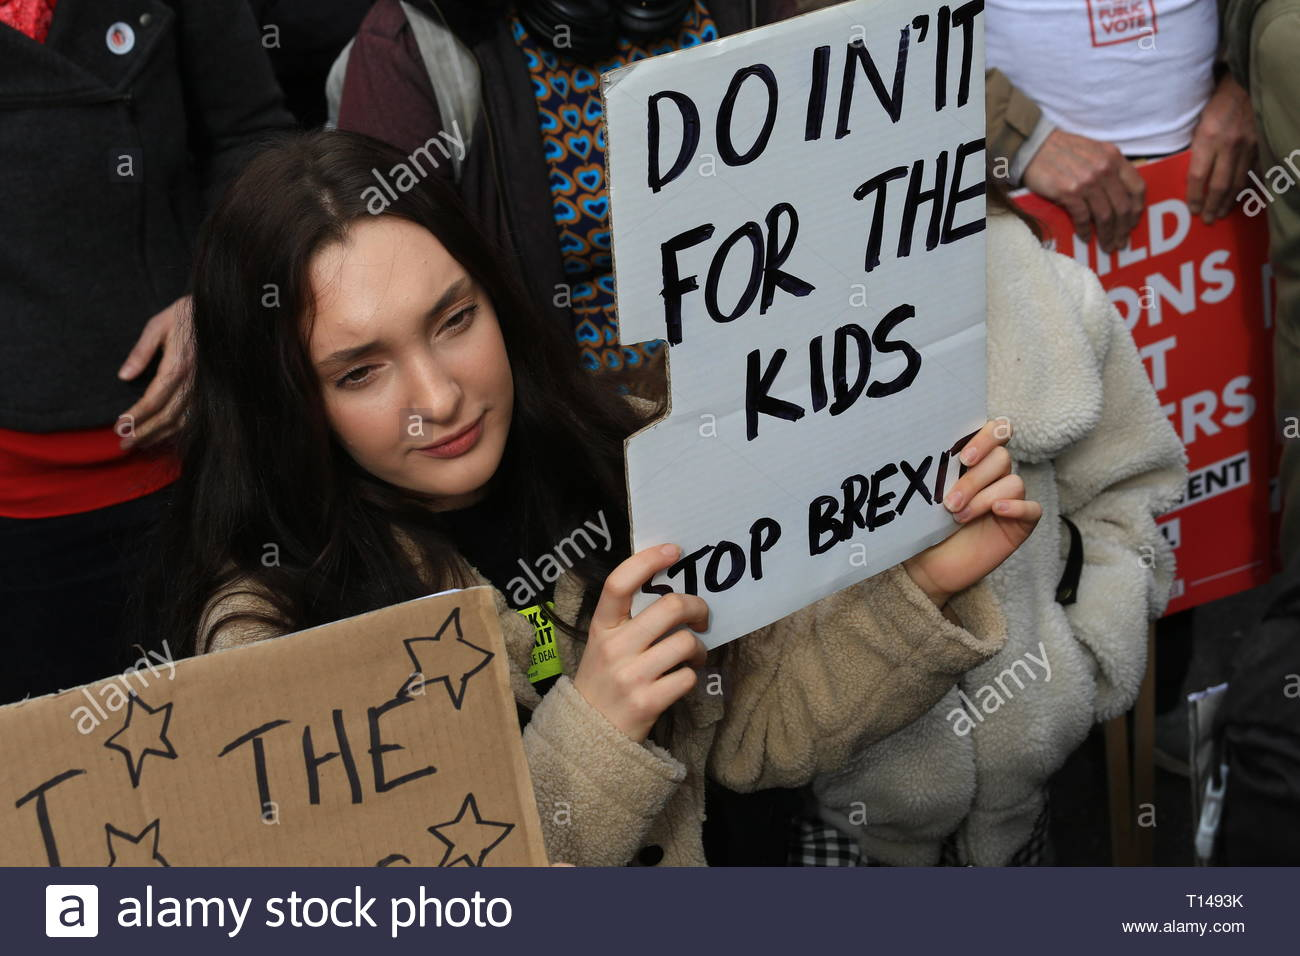 A young woman at the People's march today in London - Stock Image